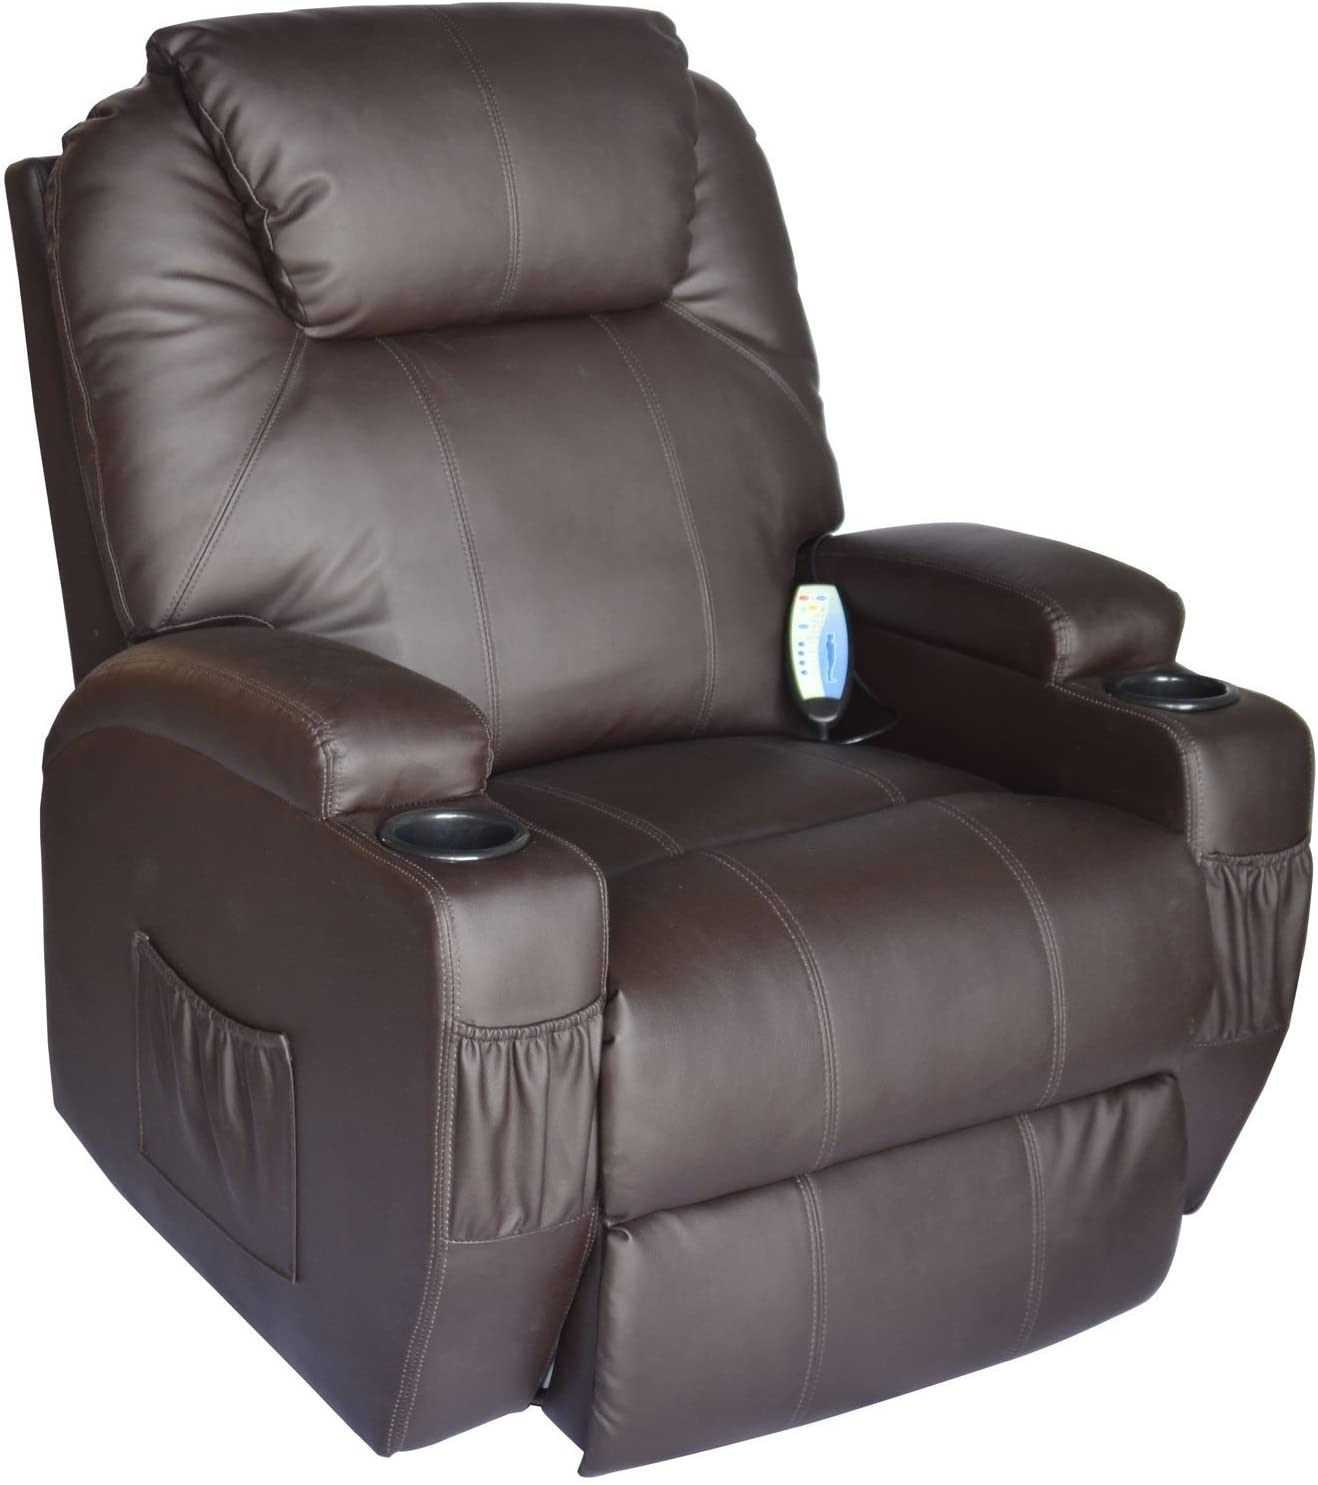 Cavendish electric recliner chair with heat massage choice of colours (Brown)